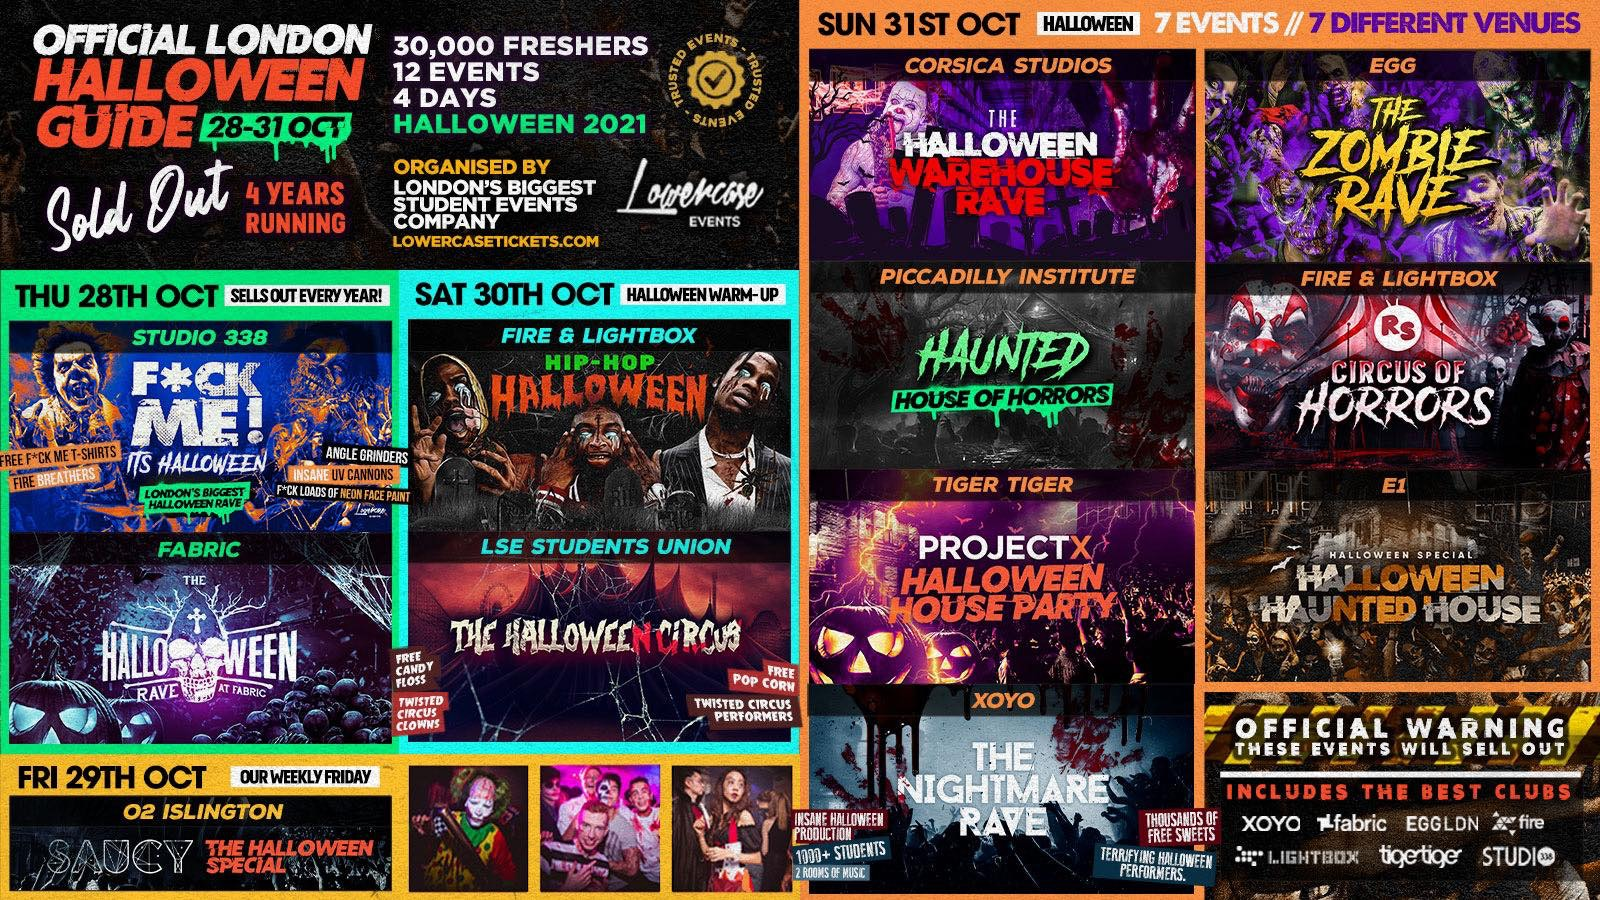 The 2021 Official London Halloween Guide | London Halloween 2021